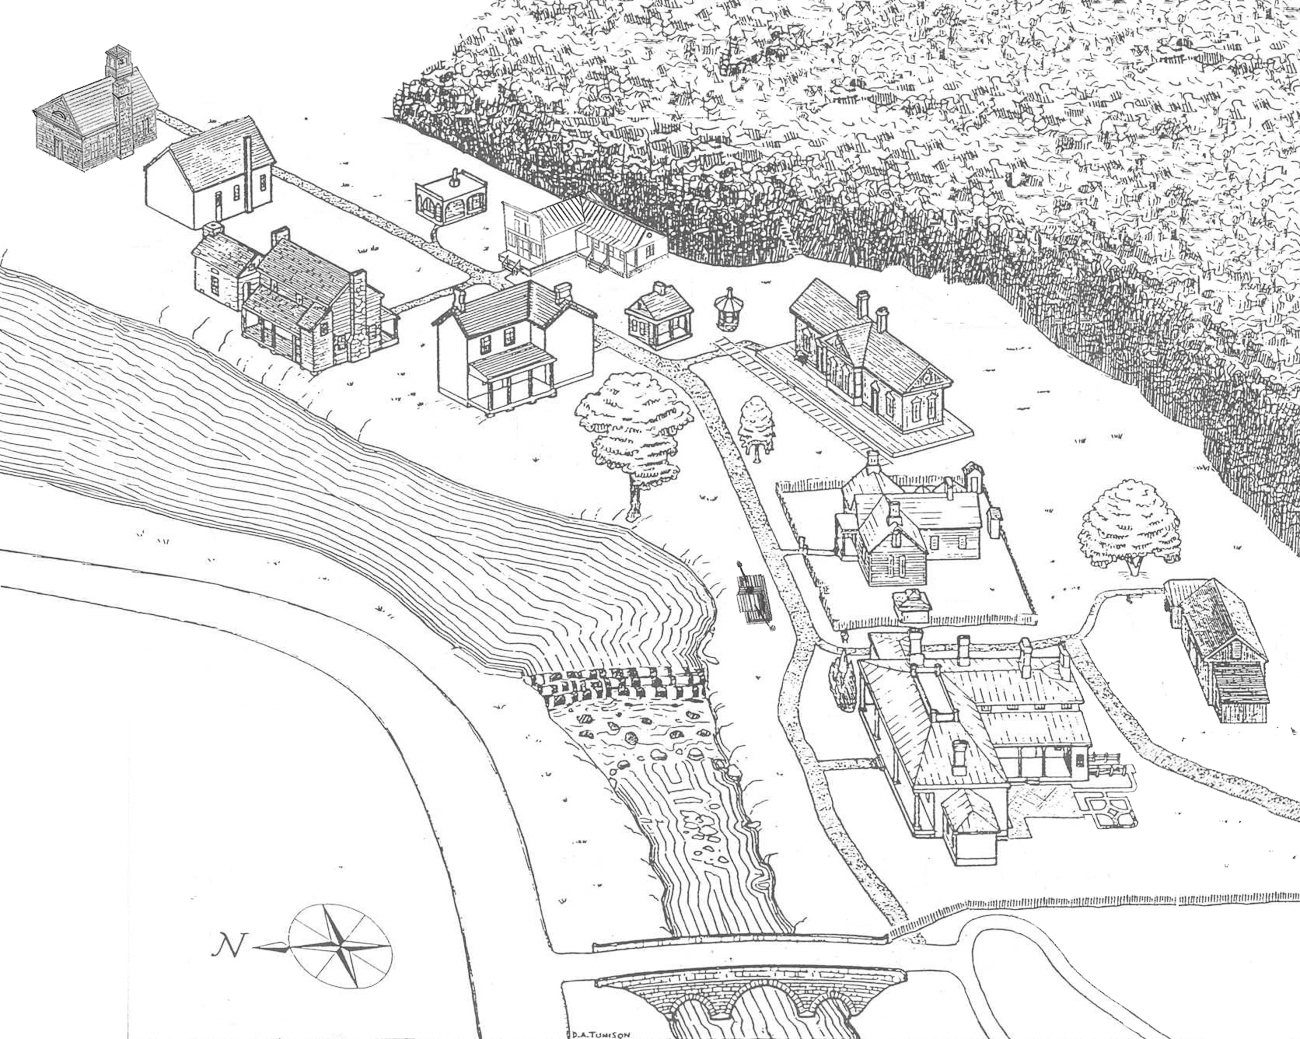 An illustrated map of the village from above shows the entirety of the museum and all of its structures. / Original drawing by D.A. Tunison with additions by Dennis Jones // Published: 12.5.19